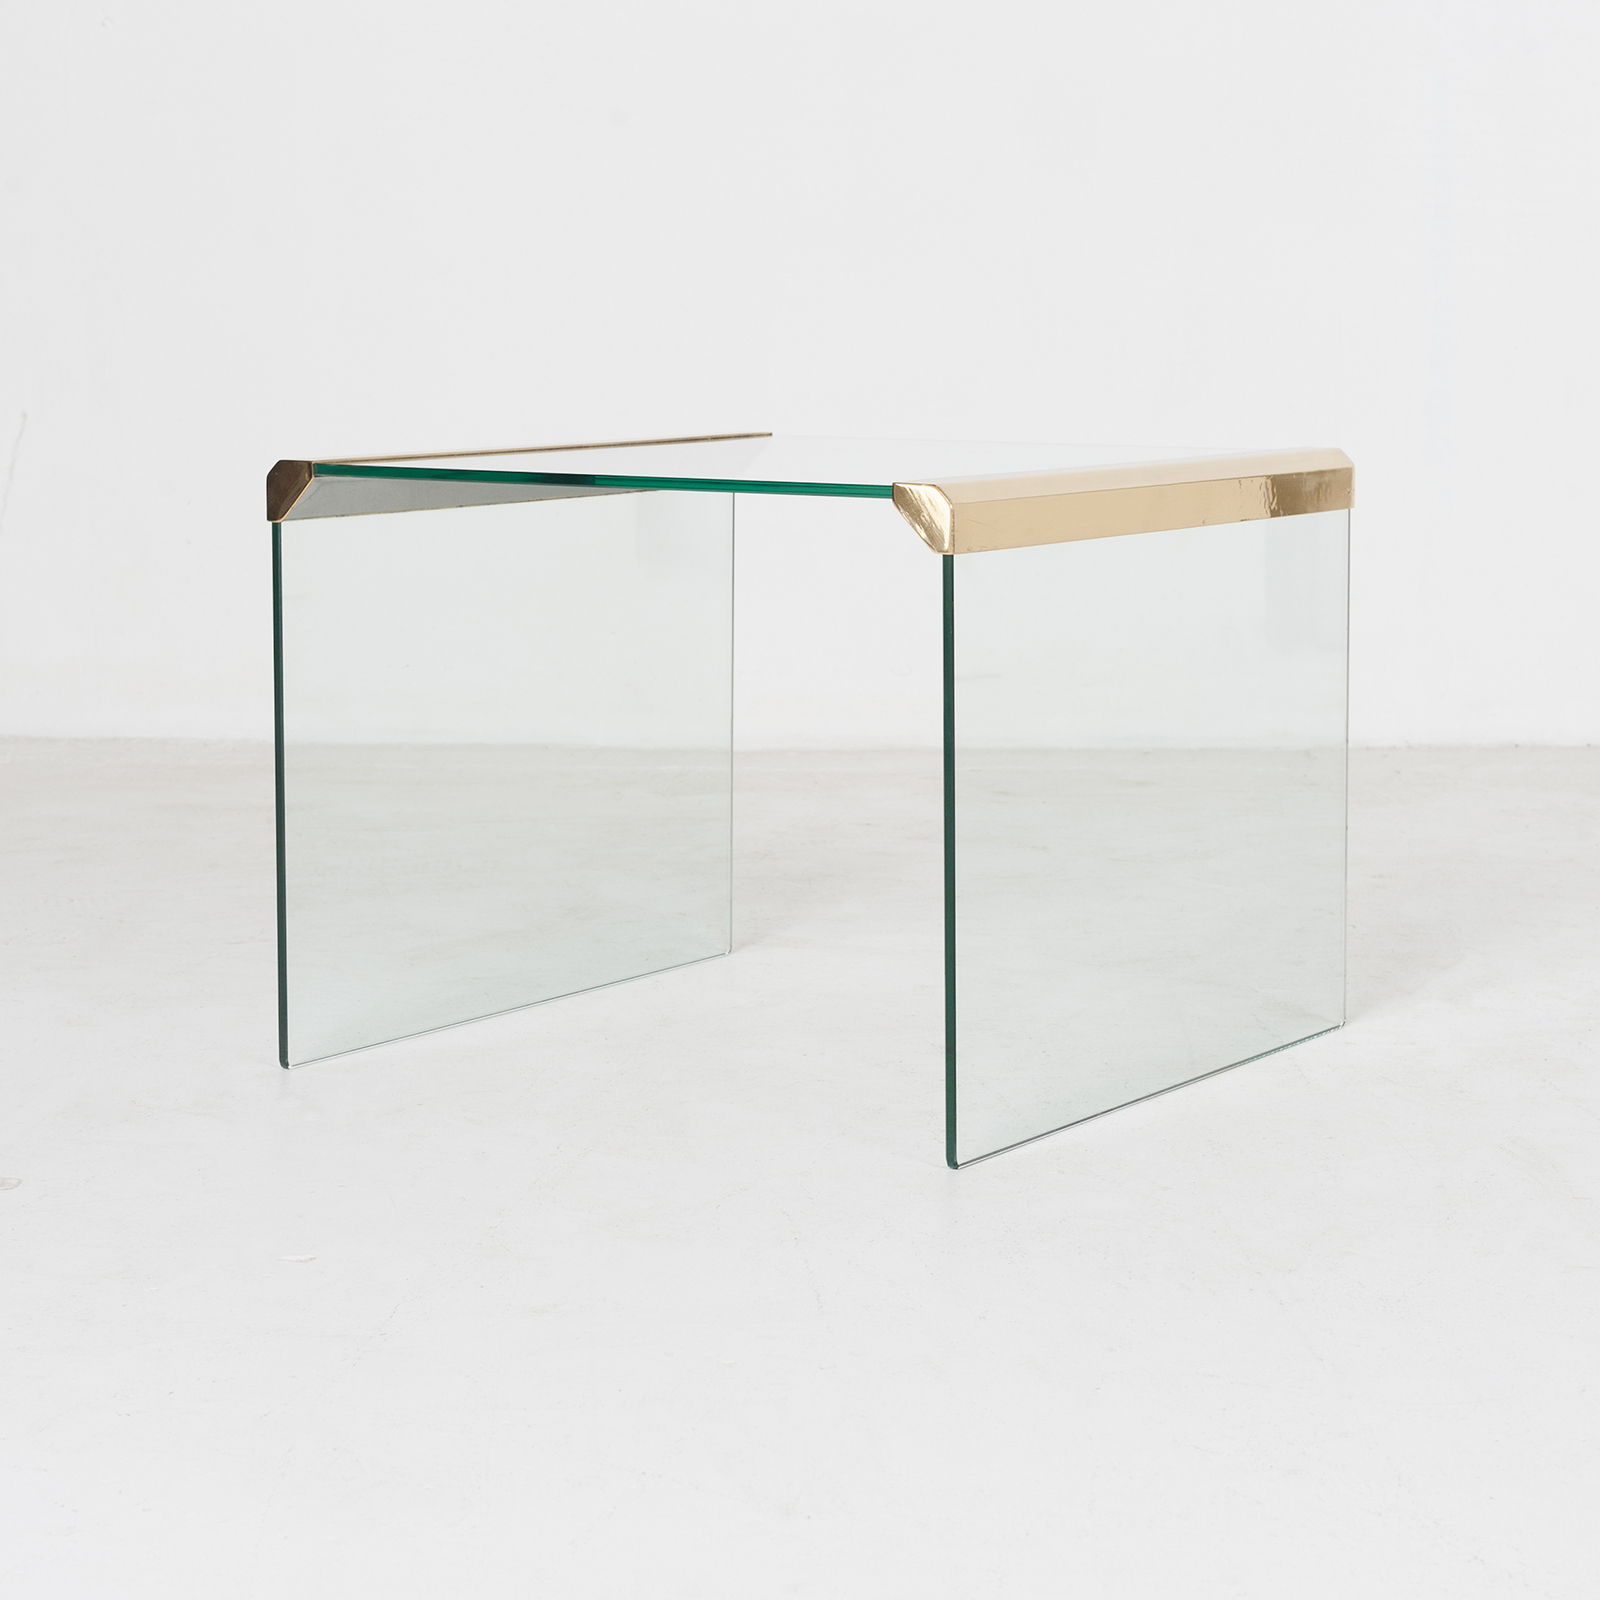 Waterfall Side Table By Pace In Glass And Anodised Brass, 1970s, United States902